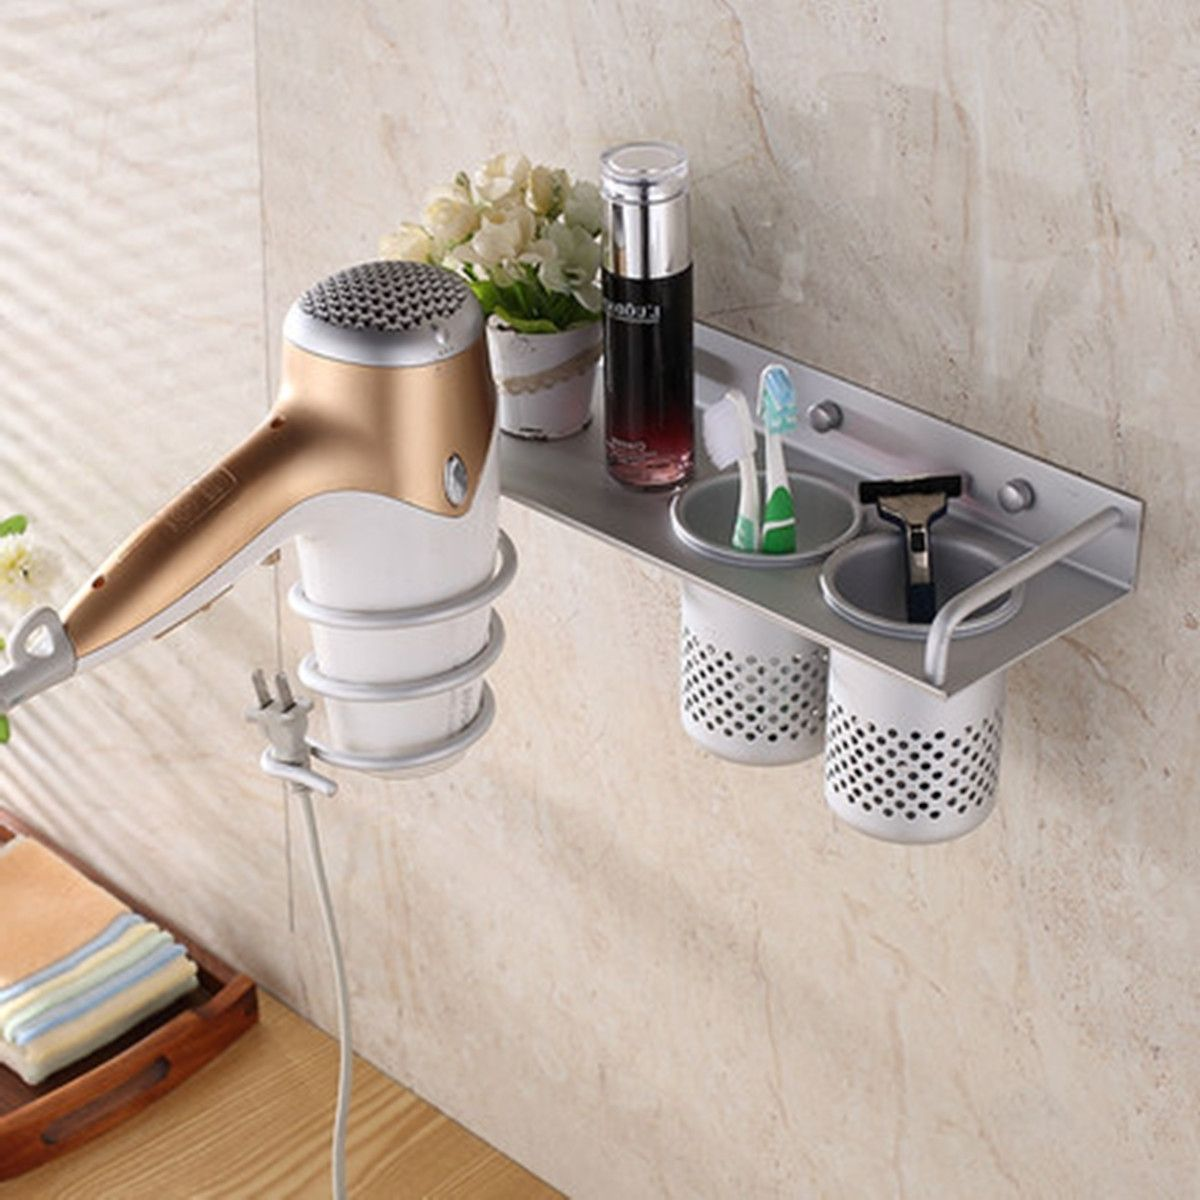 Hair Dryers Storage Ideas For Small Bathrooms